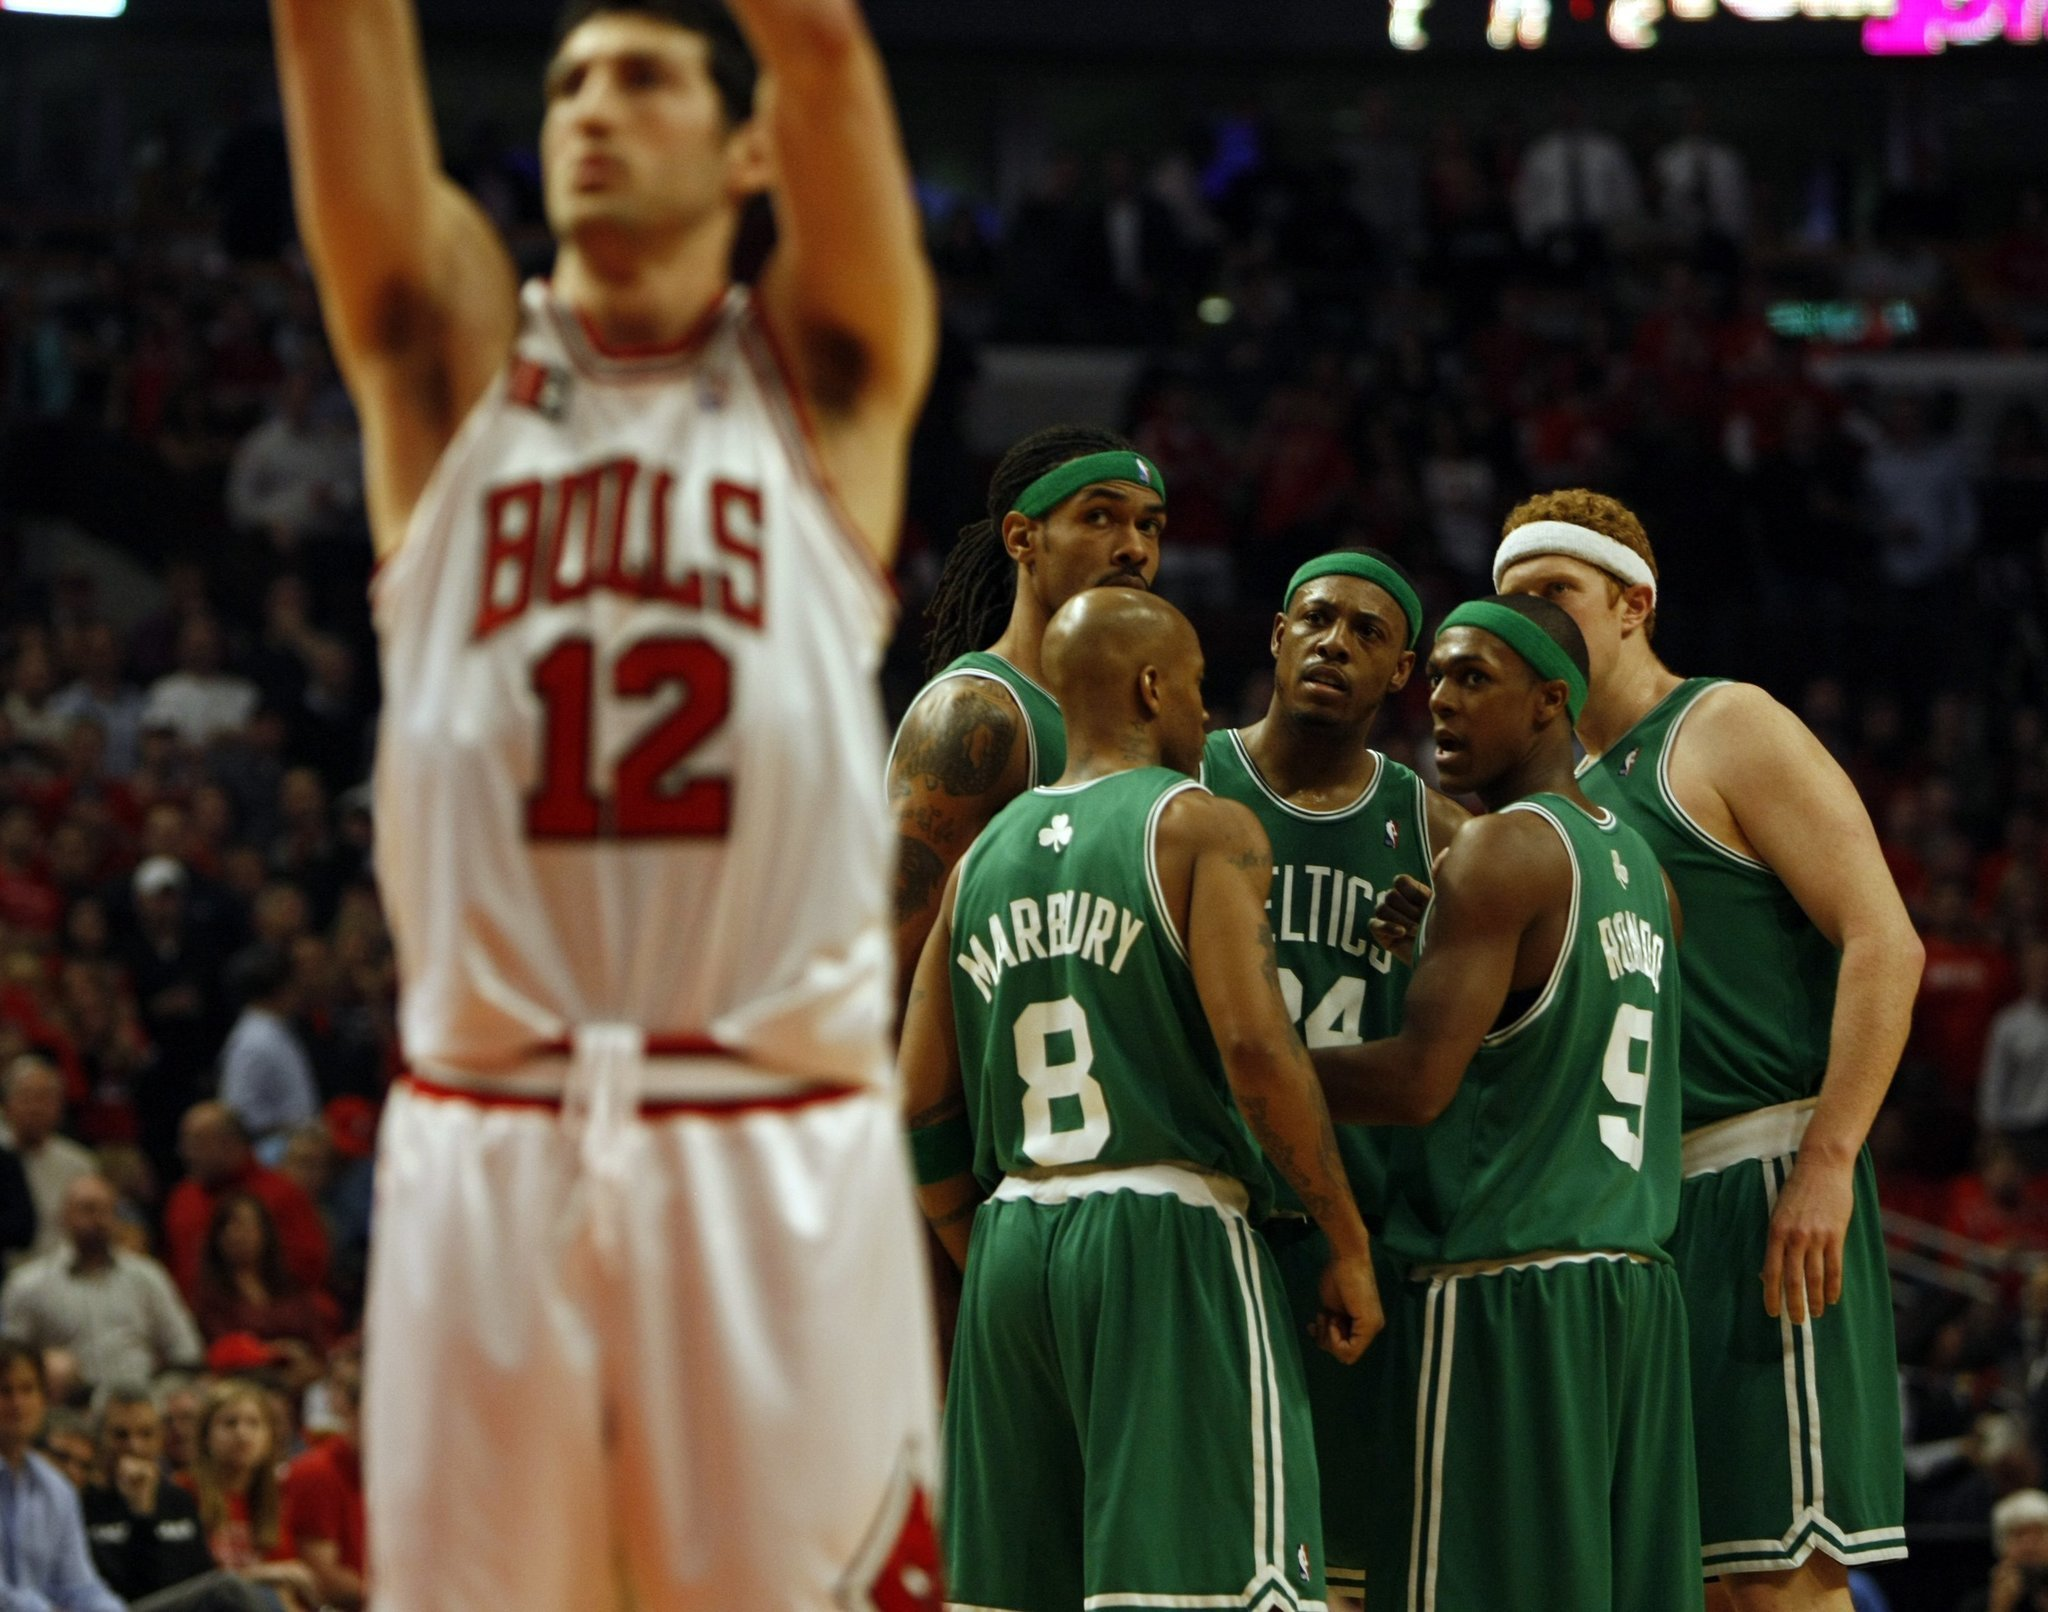 7 games. 4 OTs. A look back at memorable 2009 Bulls-Celtics series.